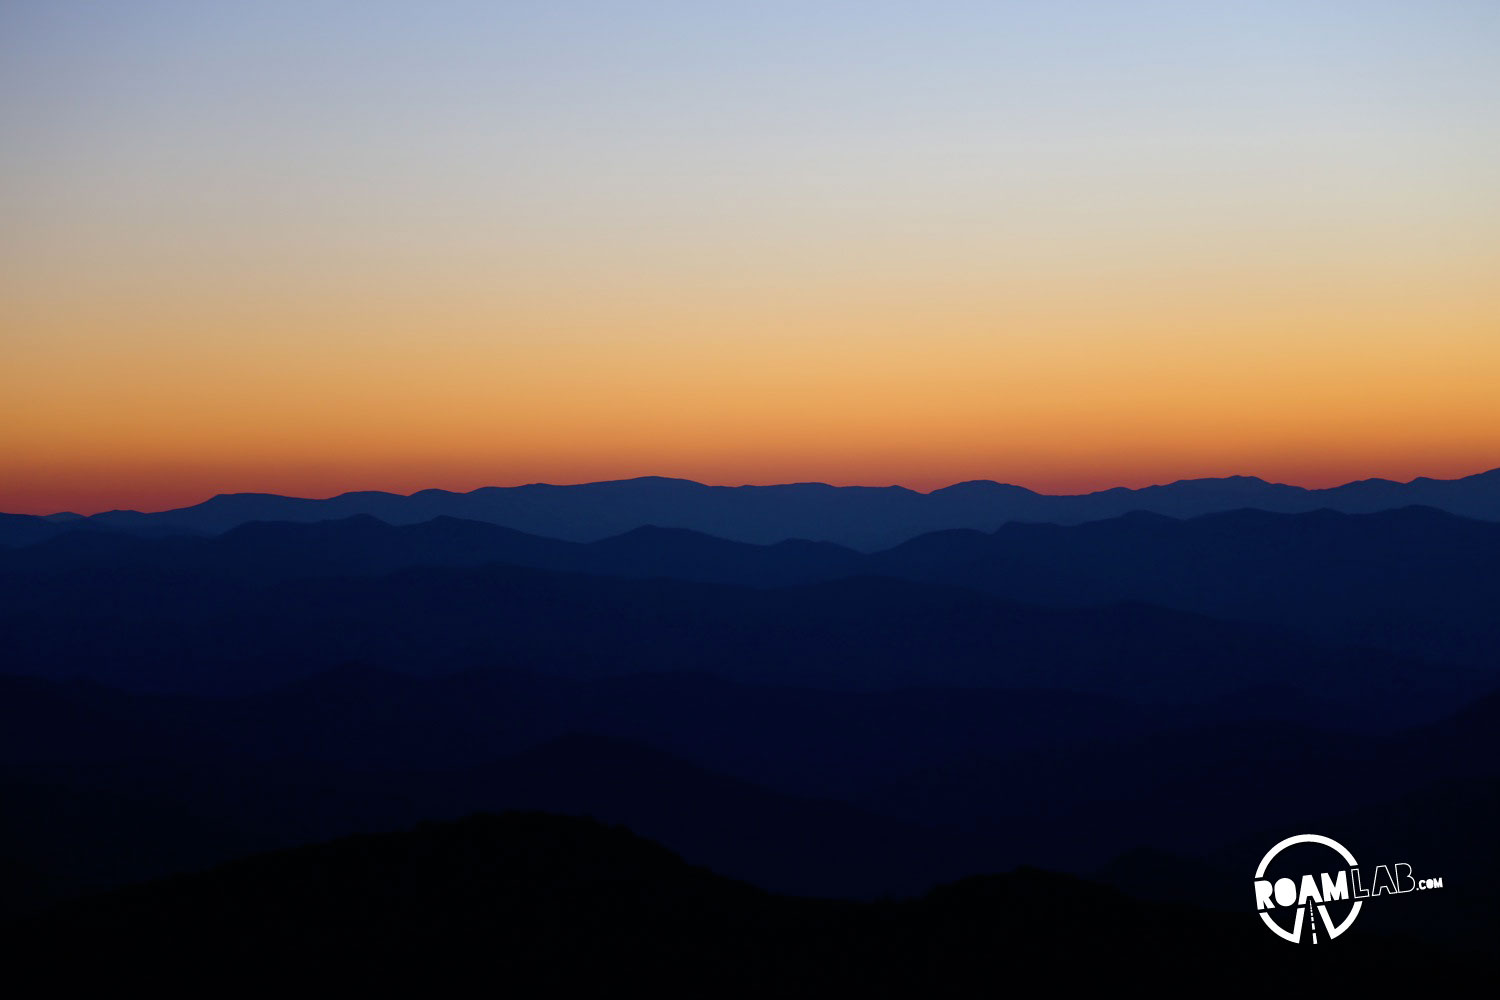 Blue Ridge Sunset vision of the Great Smoky Mountains National Park from the Blue Ridge Parkway.